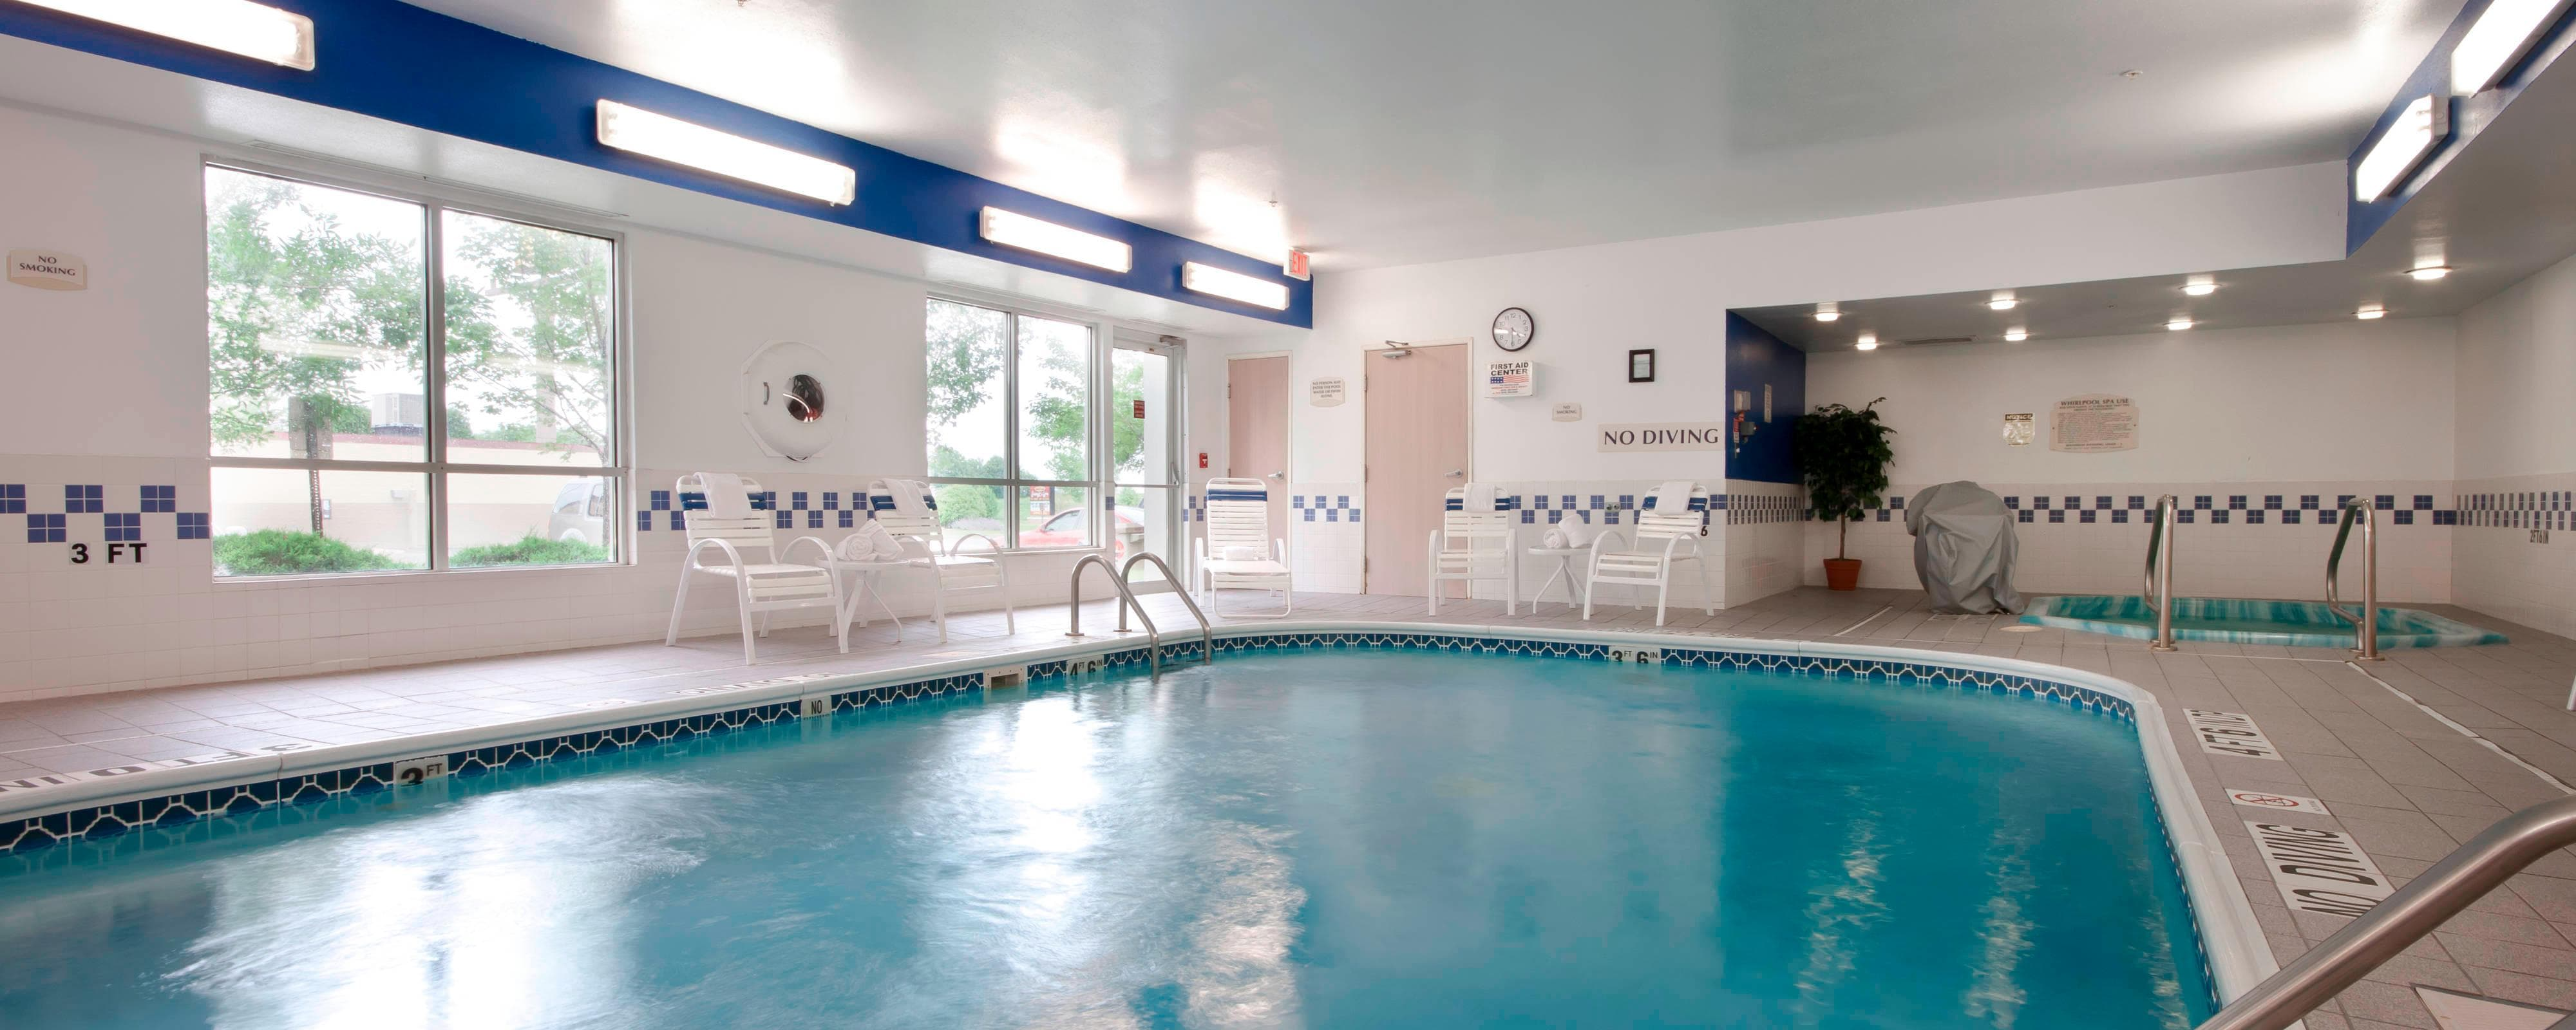 Joliet Illinois Hotel Indoor Pool